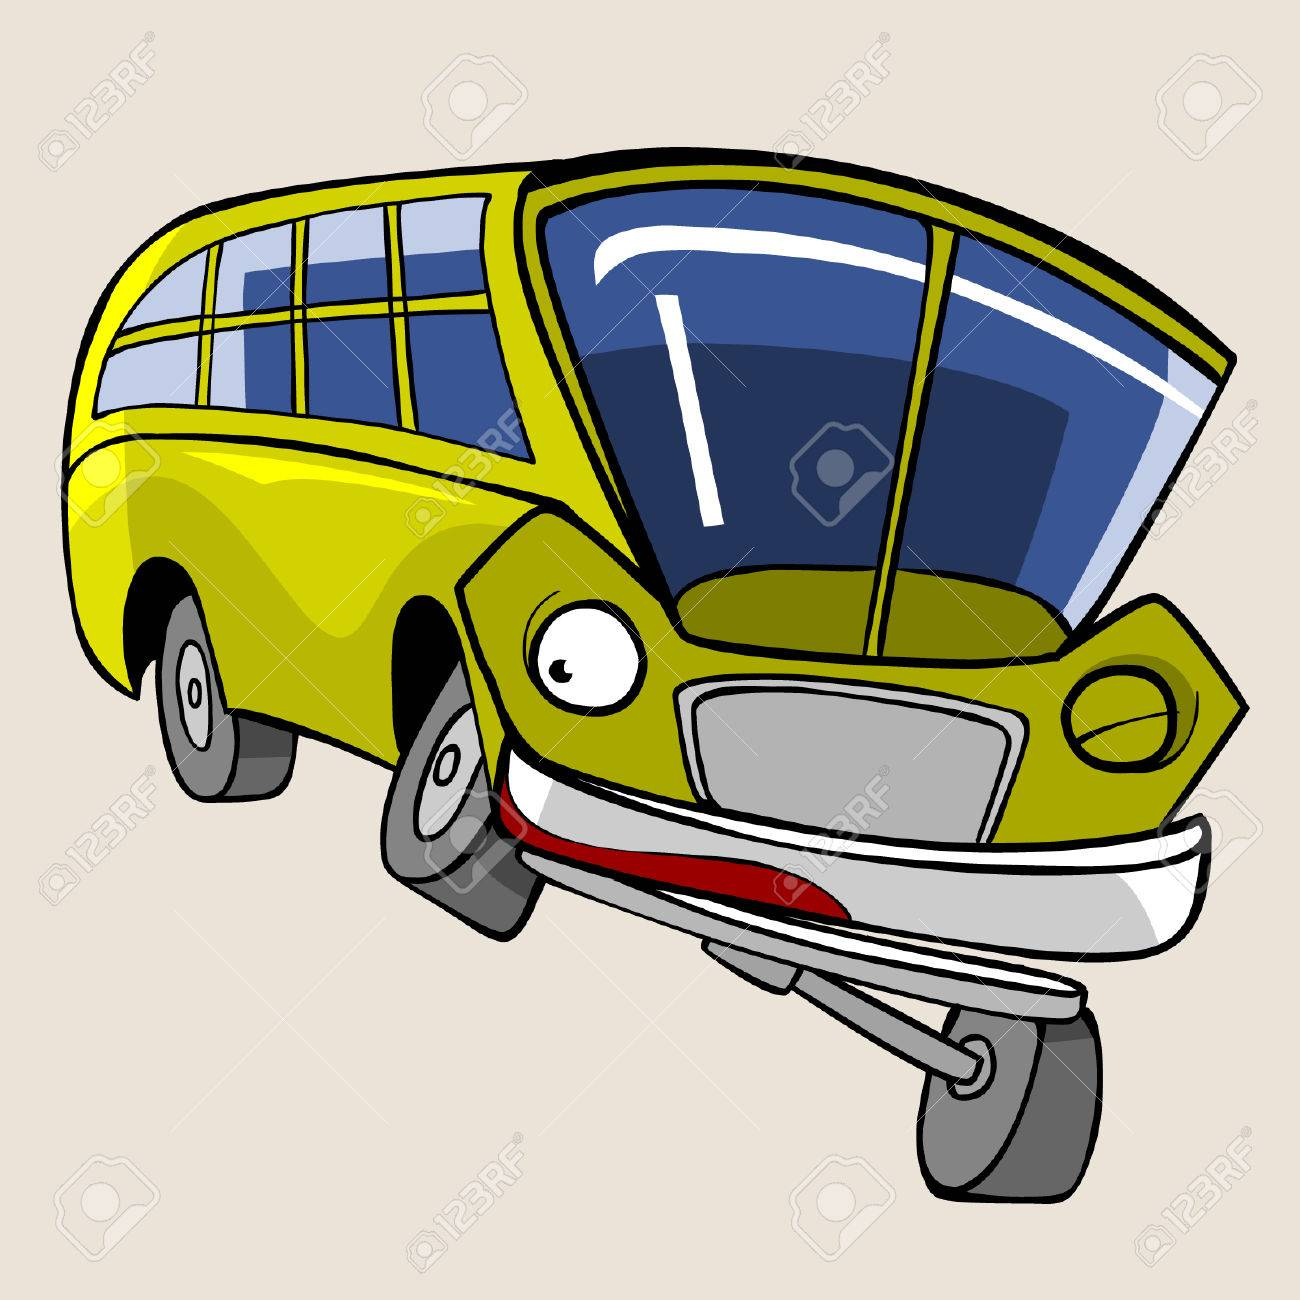 Fun Bus Royalty Free Cliparts, Vectors, And Stock Illustration. Image  3280583.